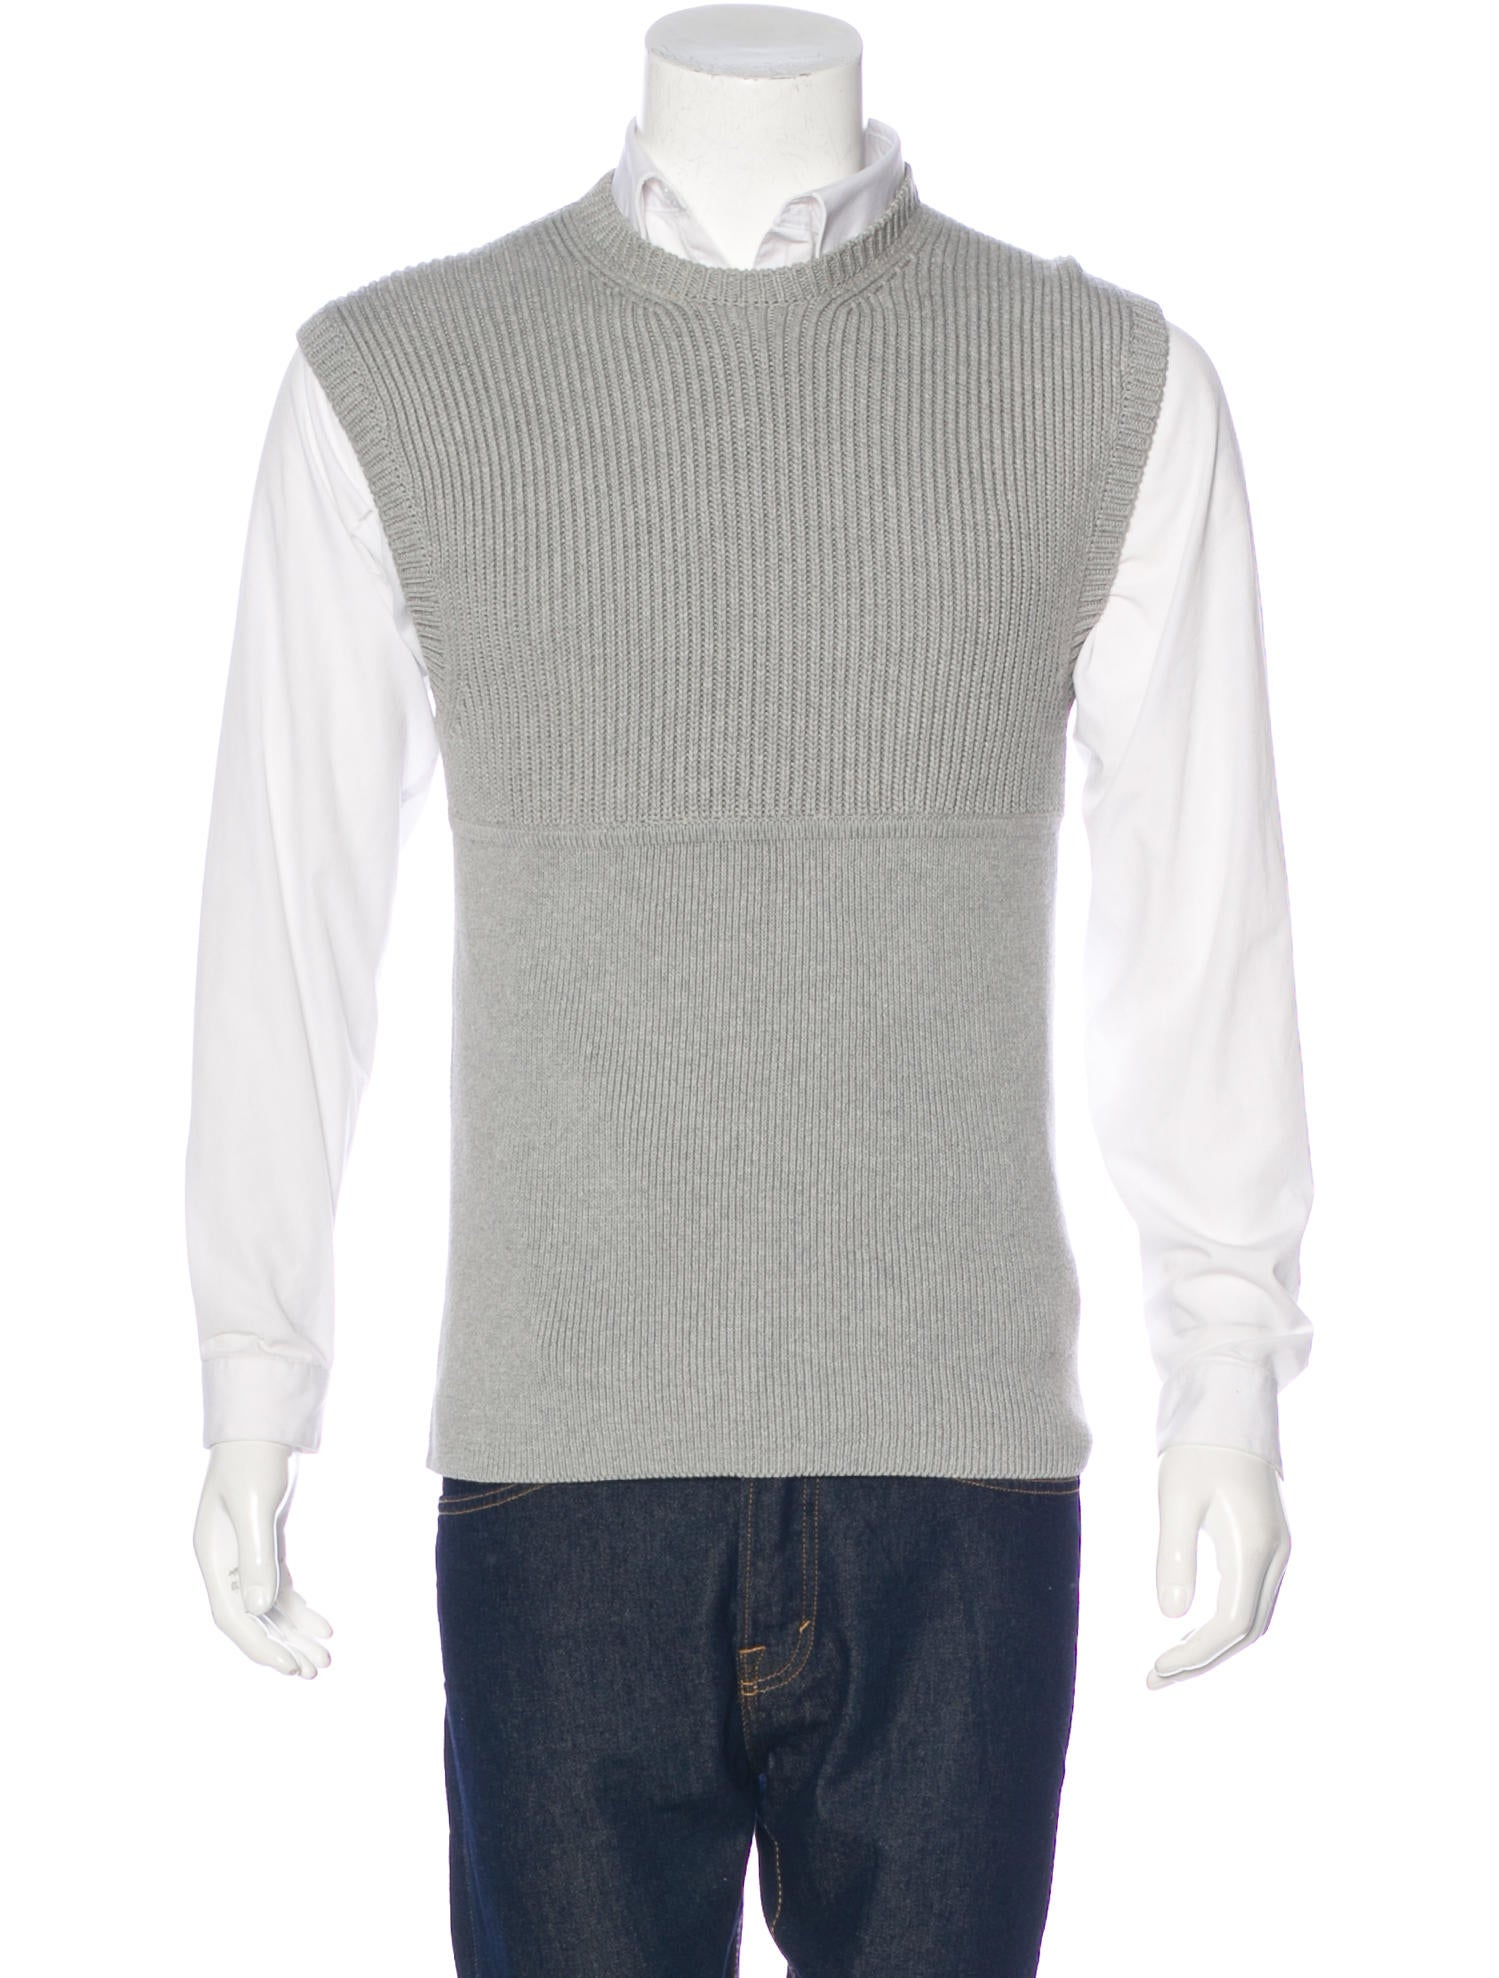 Neil Barrett Ribbed Sweater Vest w/ Tags - Clothing - NEB21367 ...